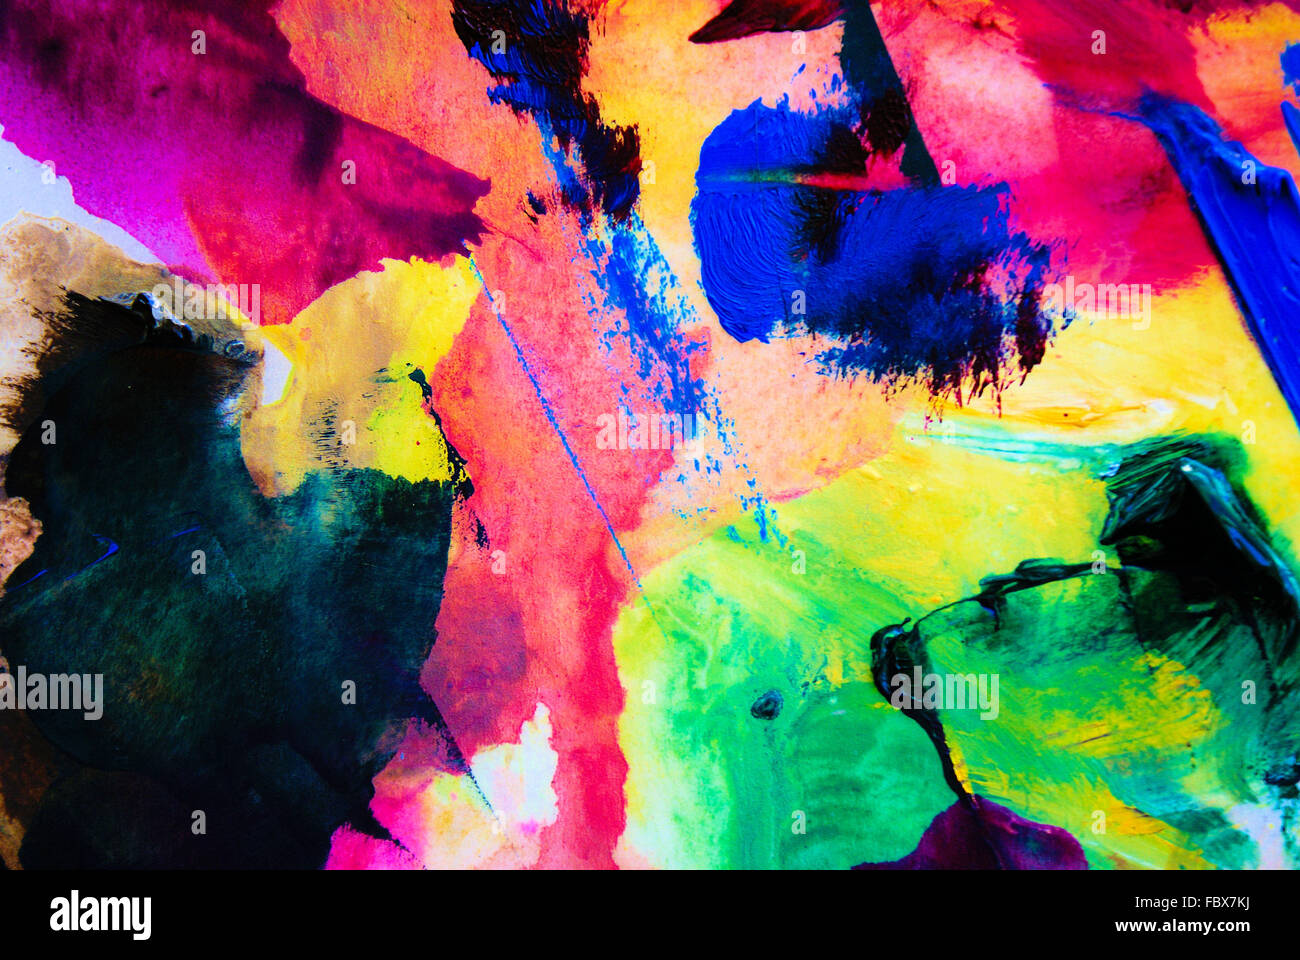 Abstract art backgrounds - Stock Image